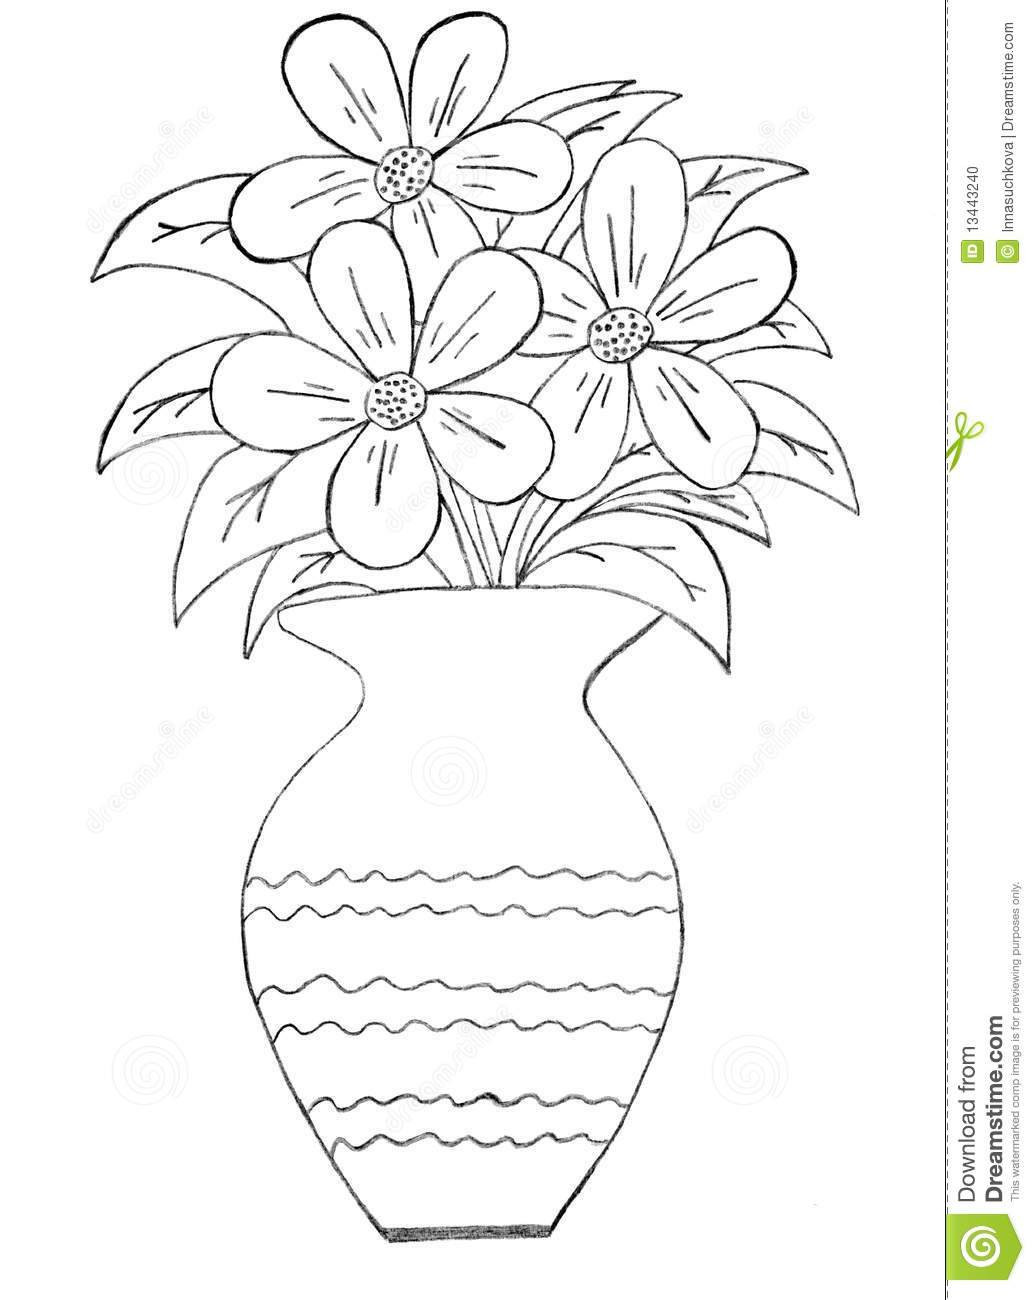 1035x1300 Vases Draw A Flower Vase Incoming H4 Pencil Art Images Flowers